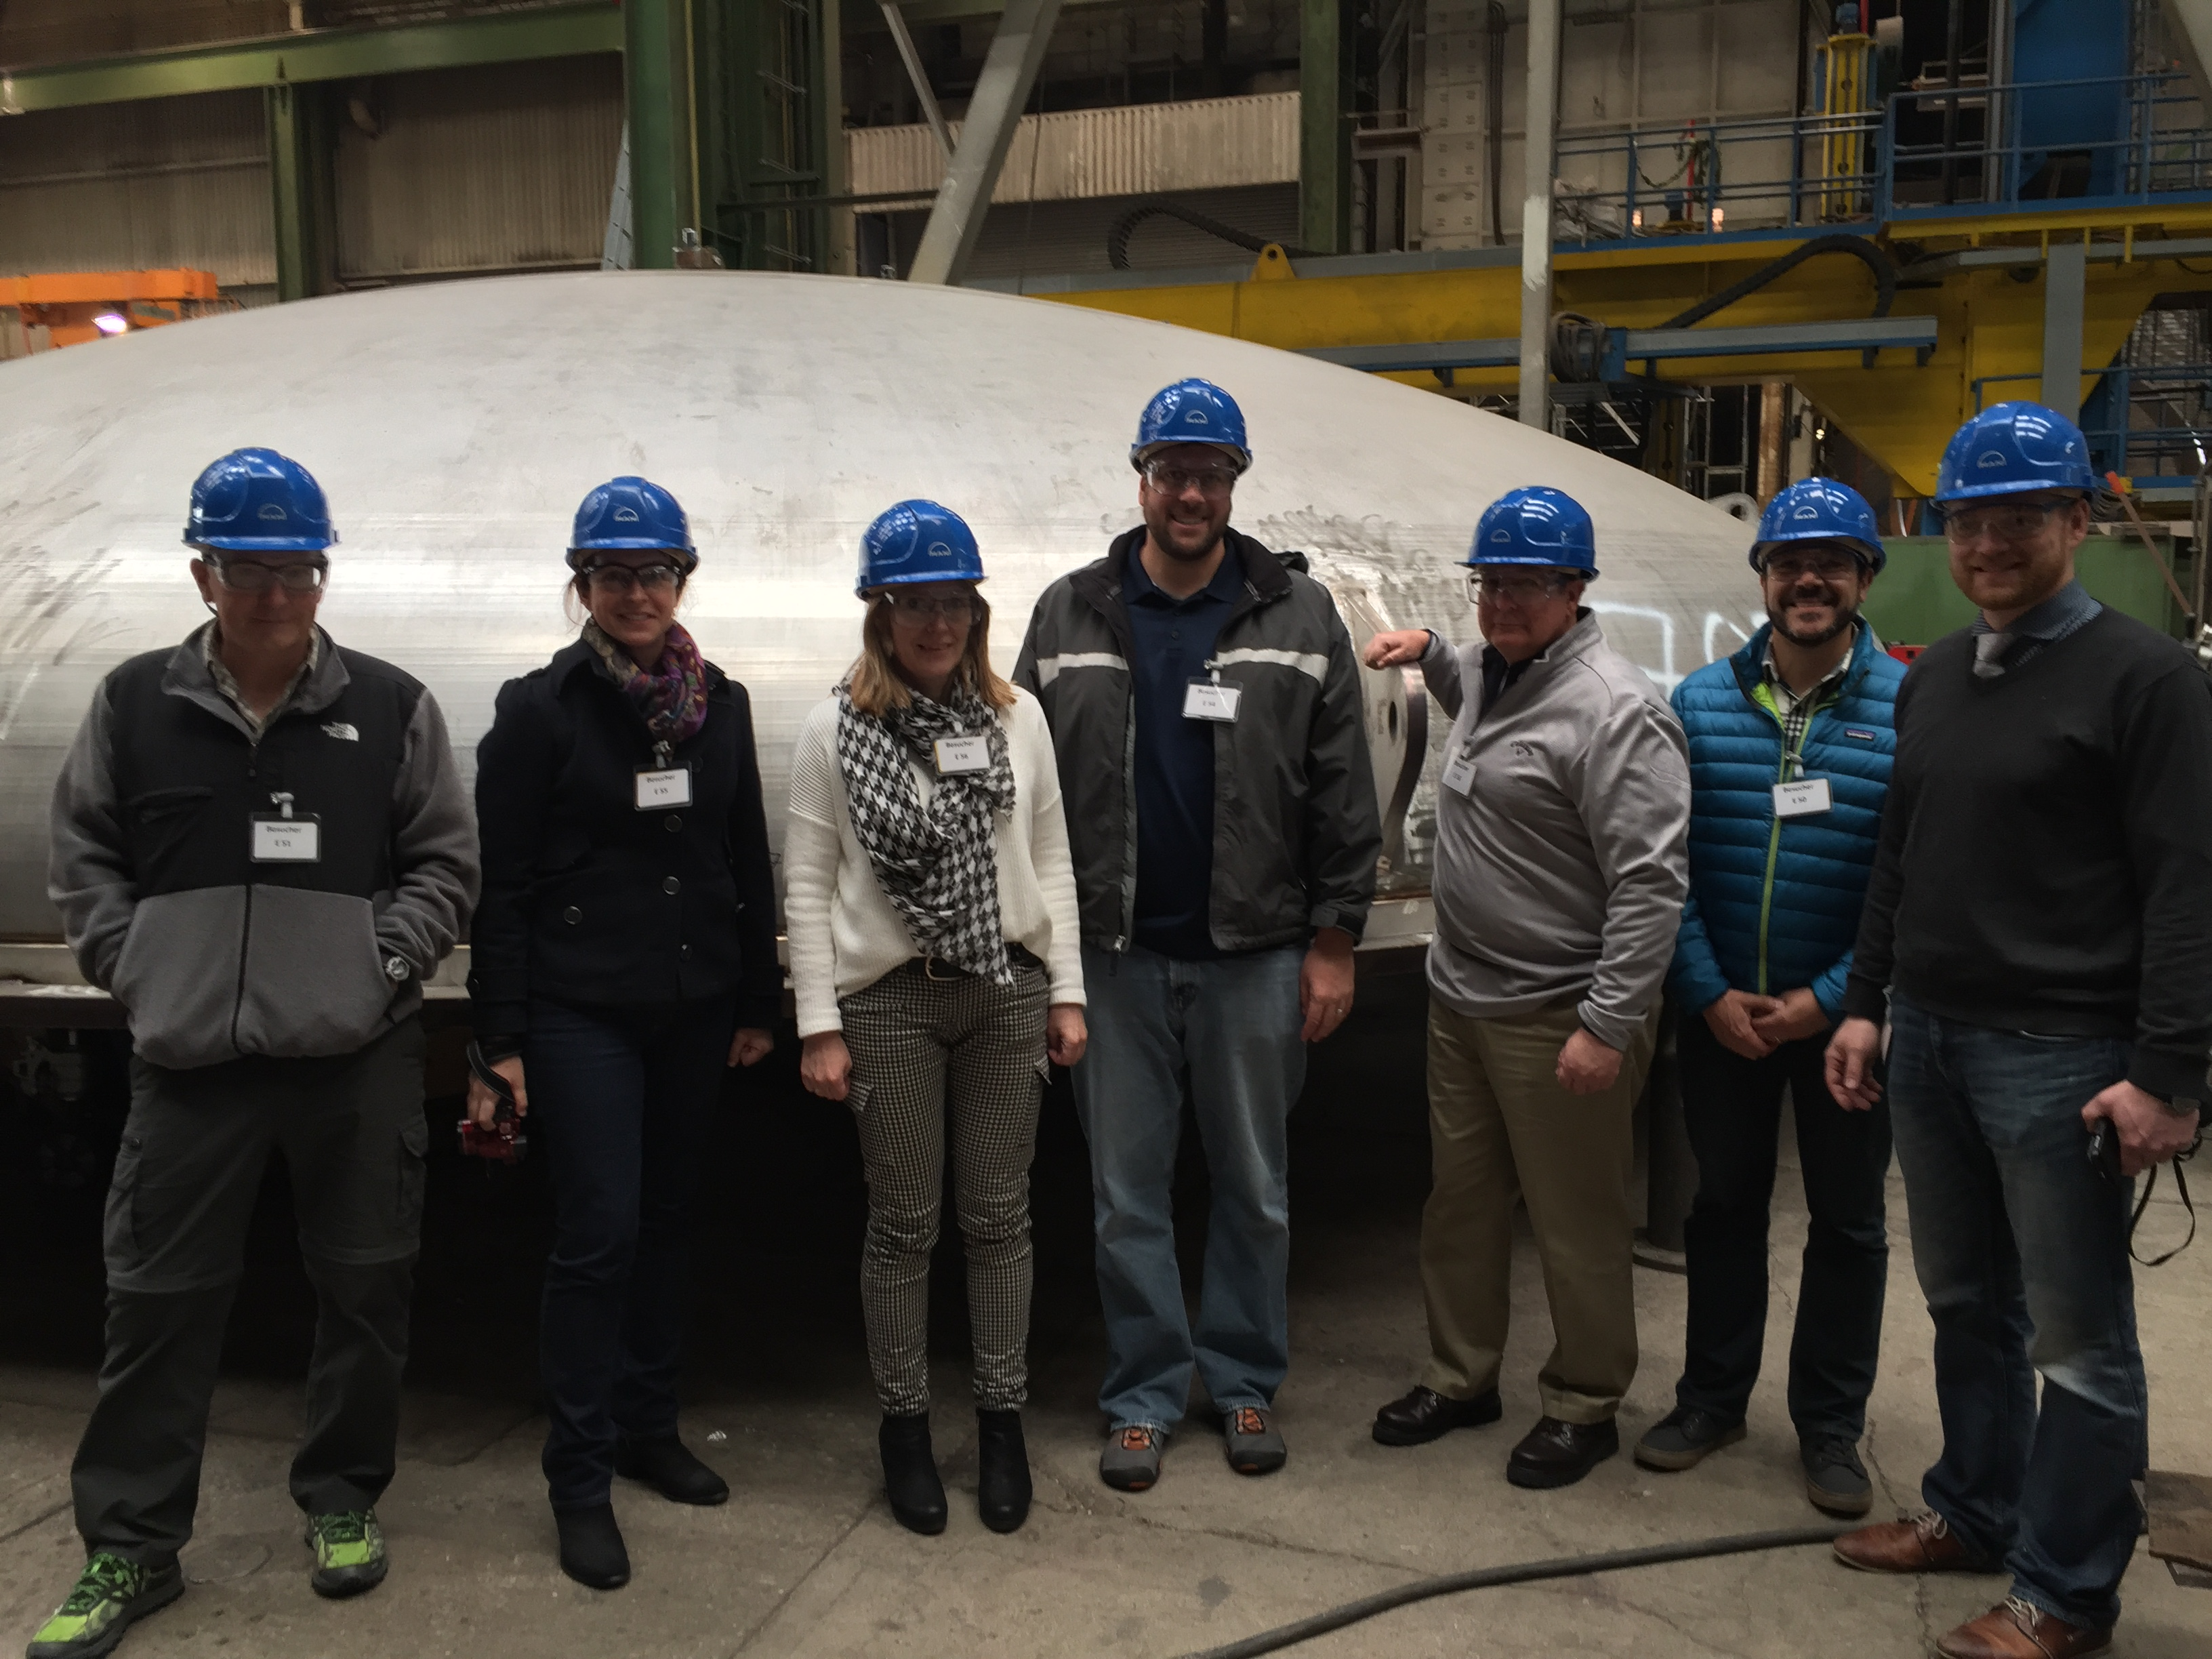 LSST team plus Von Ardenne representatives at the MAN facilities in Deggendorf with the Upper Chamber behind us.